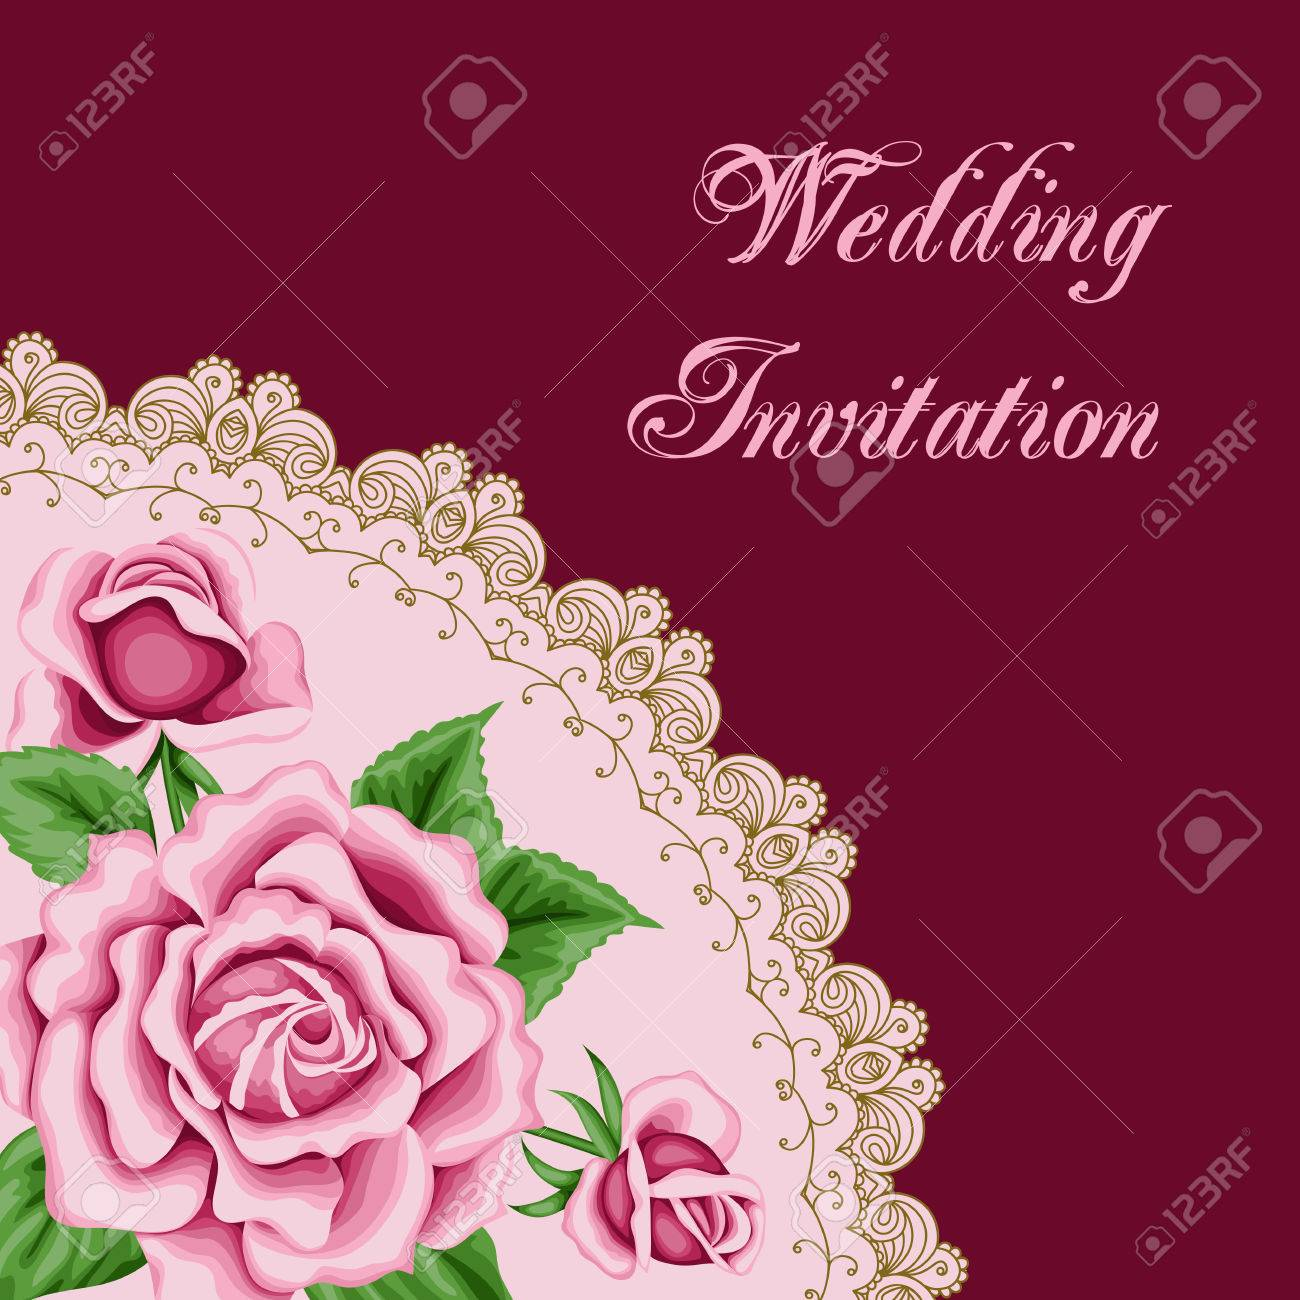 Vintage Wedding Invitation With Pink Roses And Lace Border. Save ...